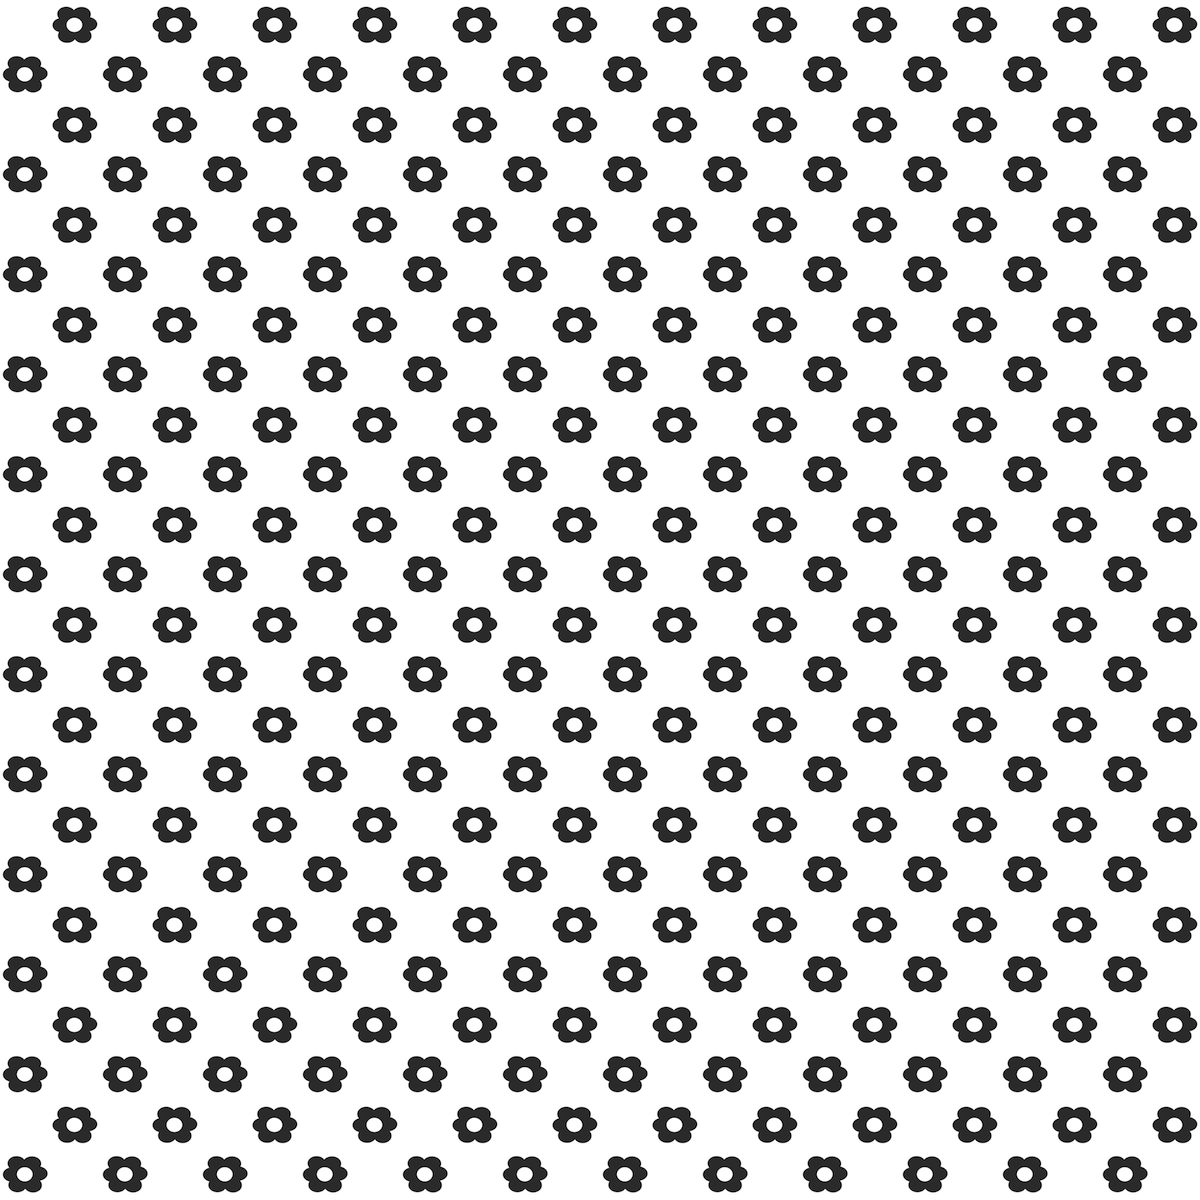 black and white wrapping paper Wrap up your gifts with black white wrapping paper from zazzle great for all occasions choose from thousands of designs or create your own.